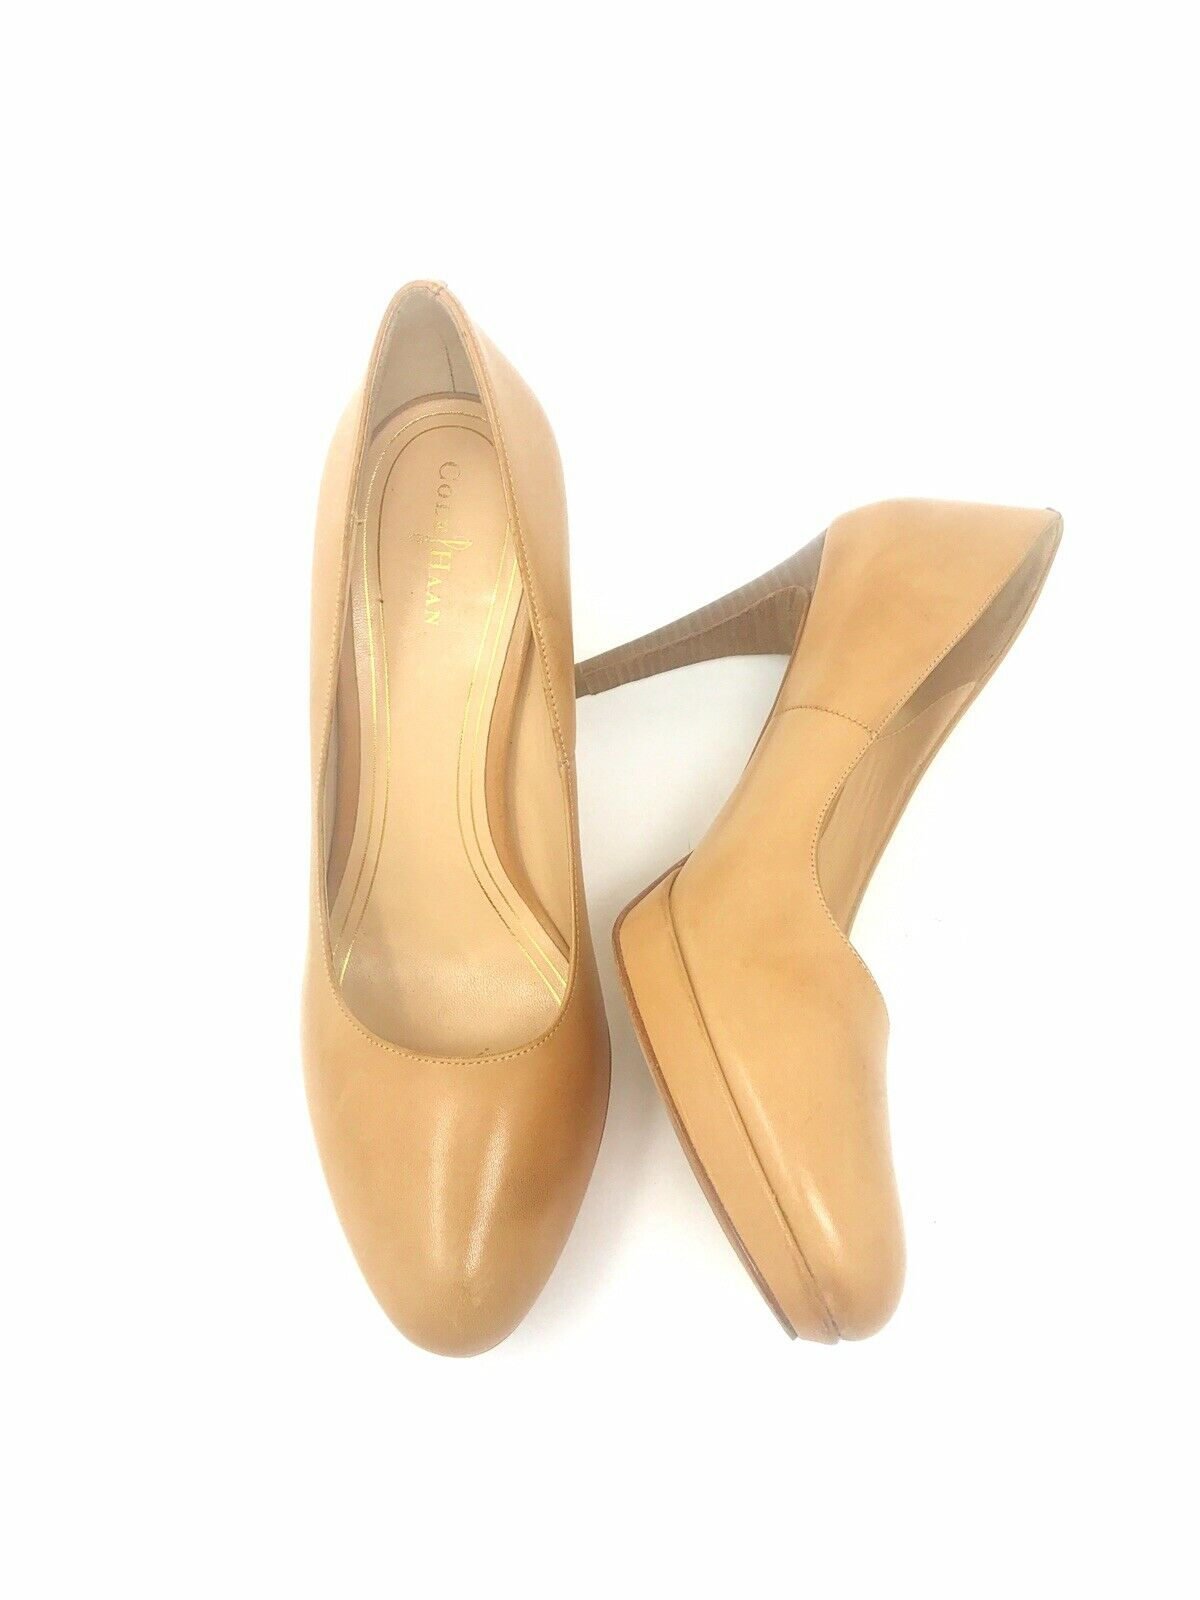 COLE HAAN, CHELSEA HIGH PUMP, WOMENS, SANDSTONE US SIZE 10 B,